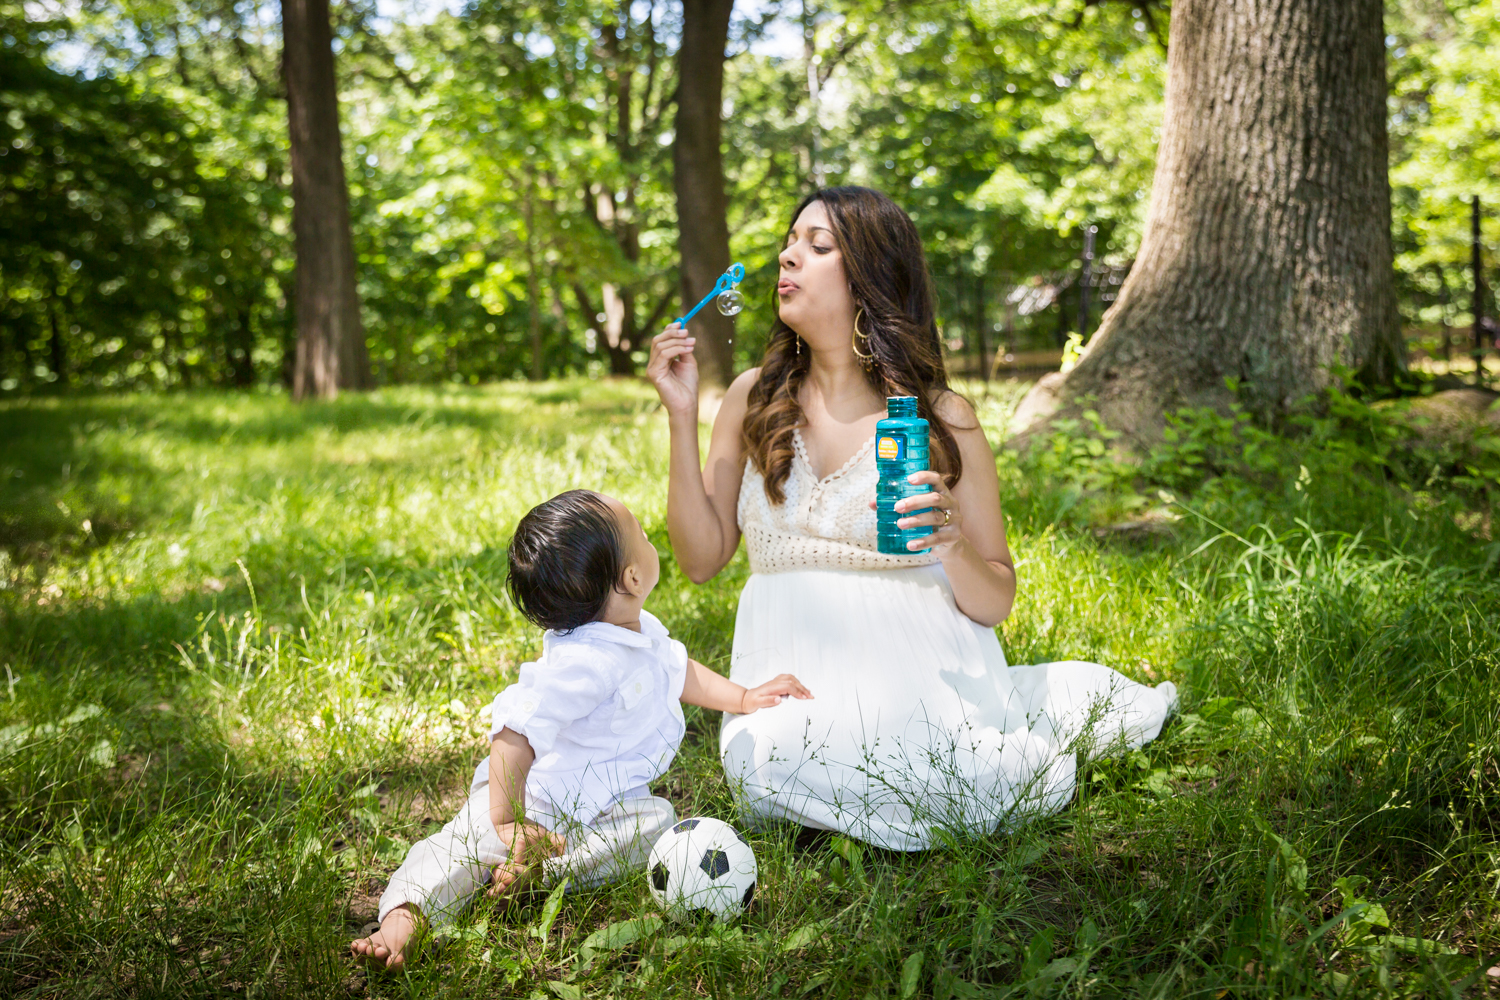 Mother blowing bubbles with son in grass